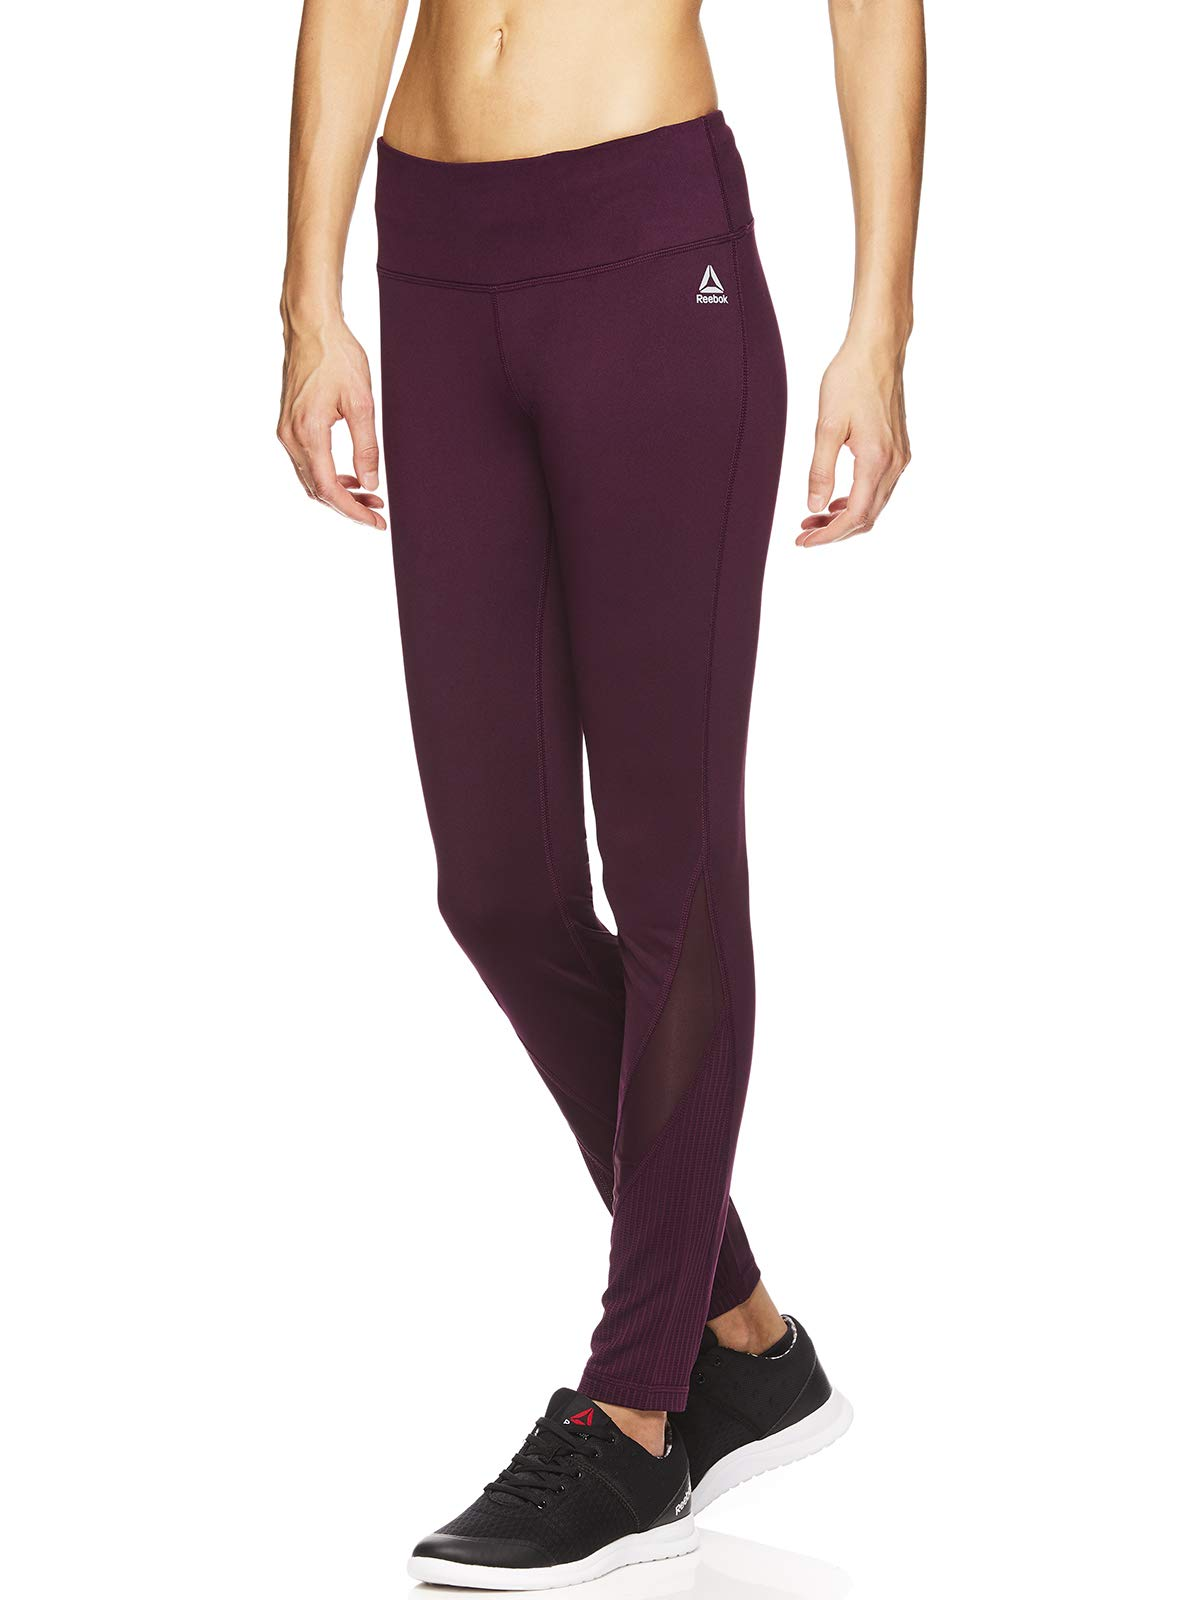 Reebok Women's Leggings Full Length Performance Compression Pants - Athletic Workout Leggings for Women for Gym & Sports - Stealth Potent Purple, Small by Reebok